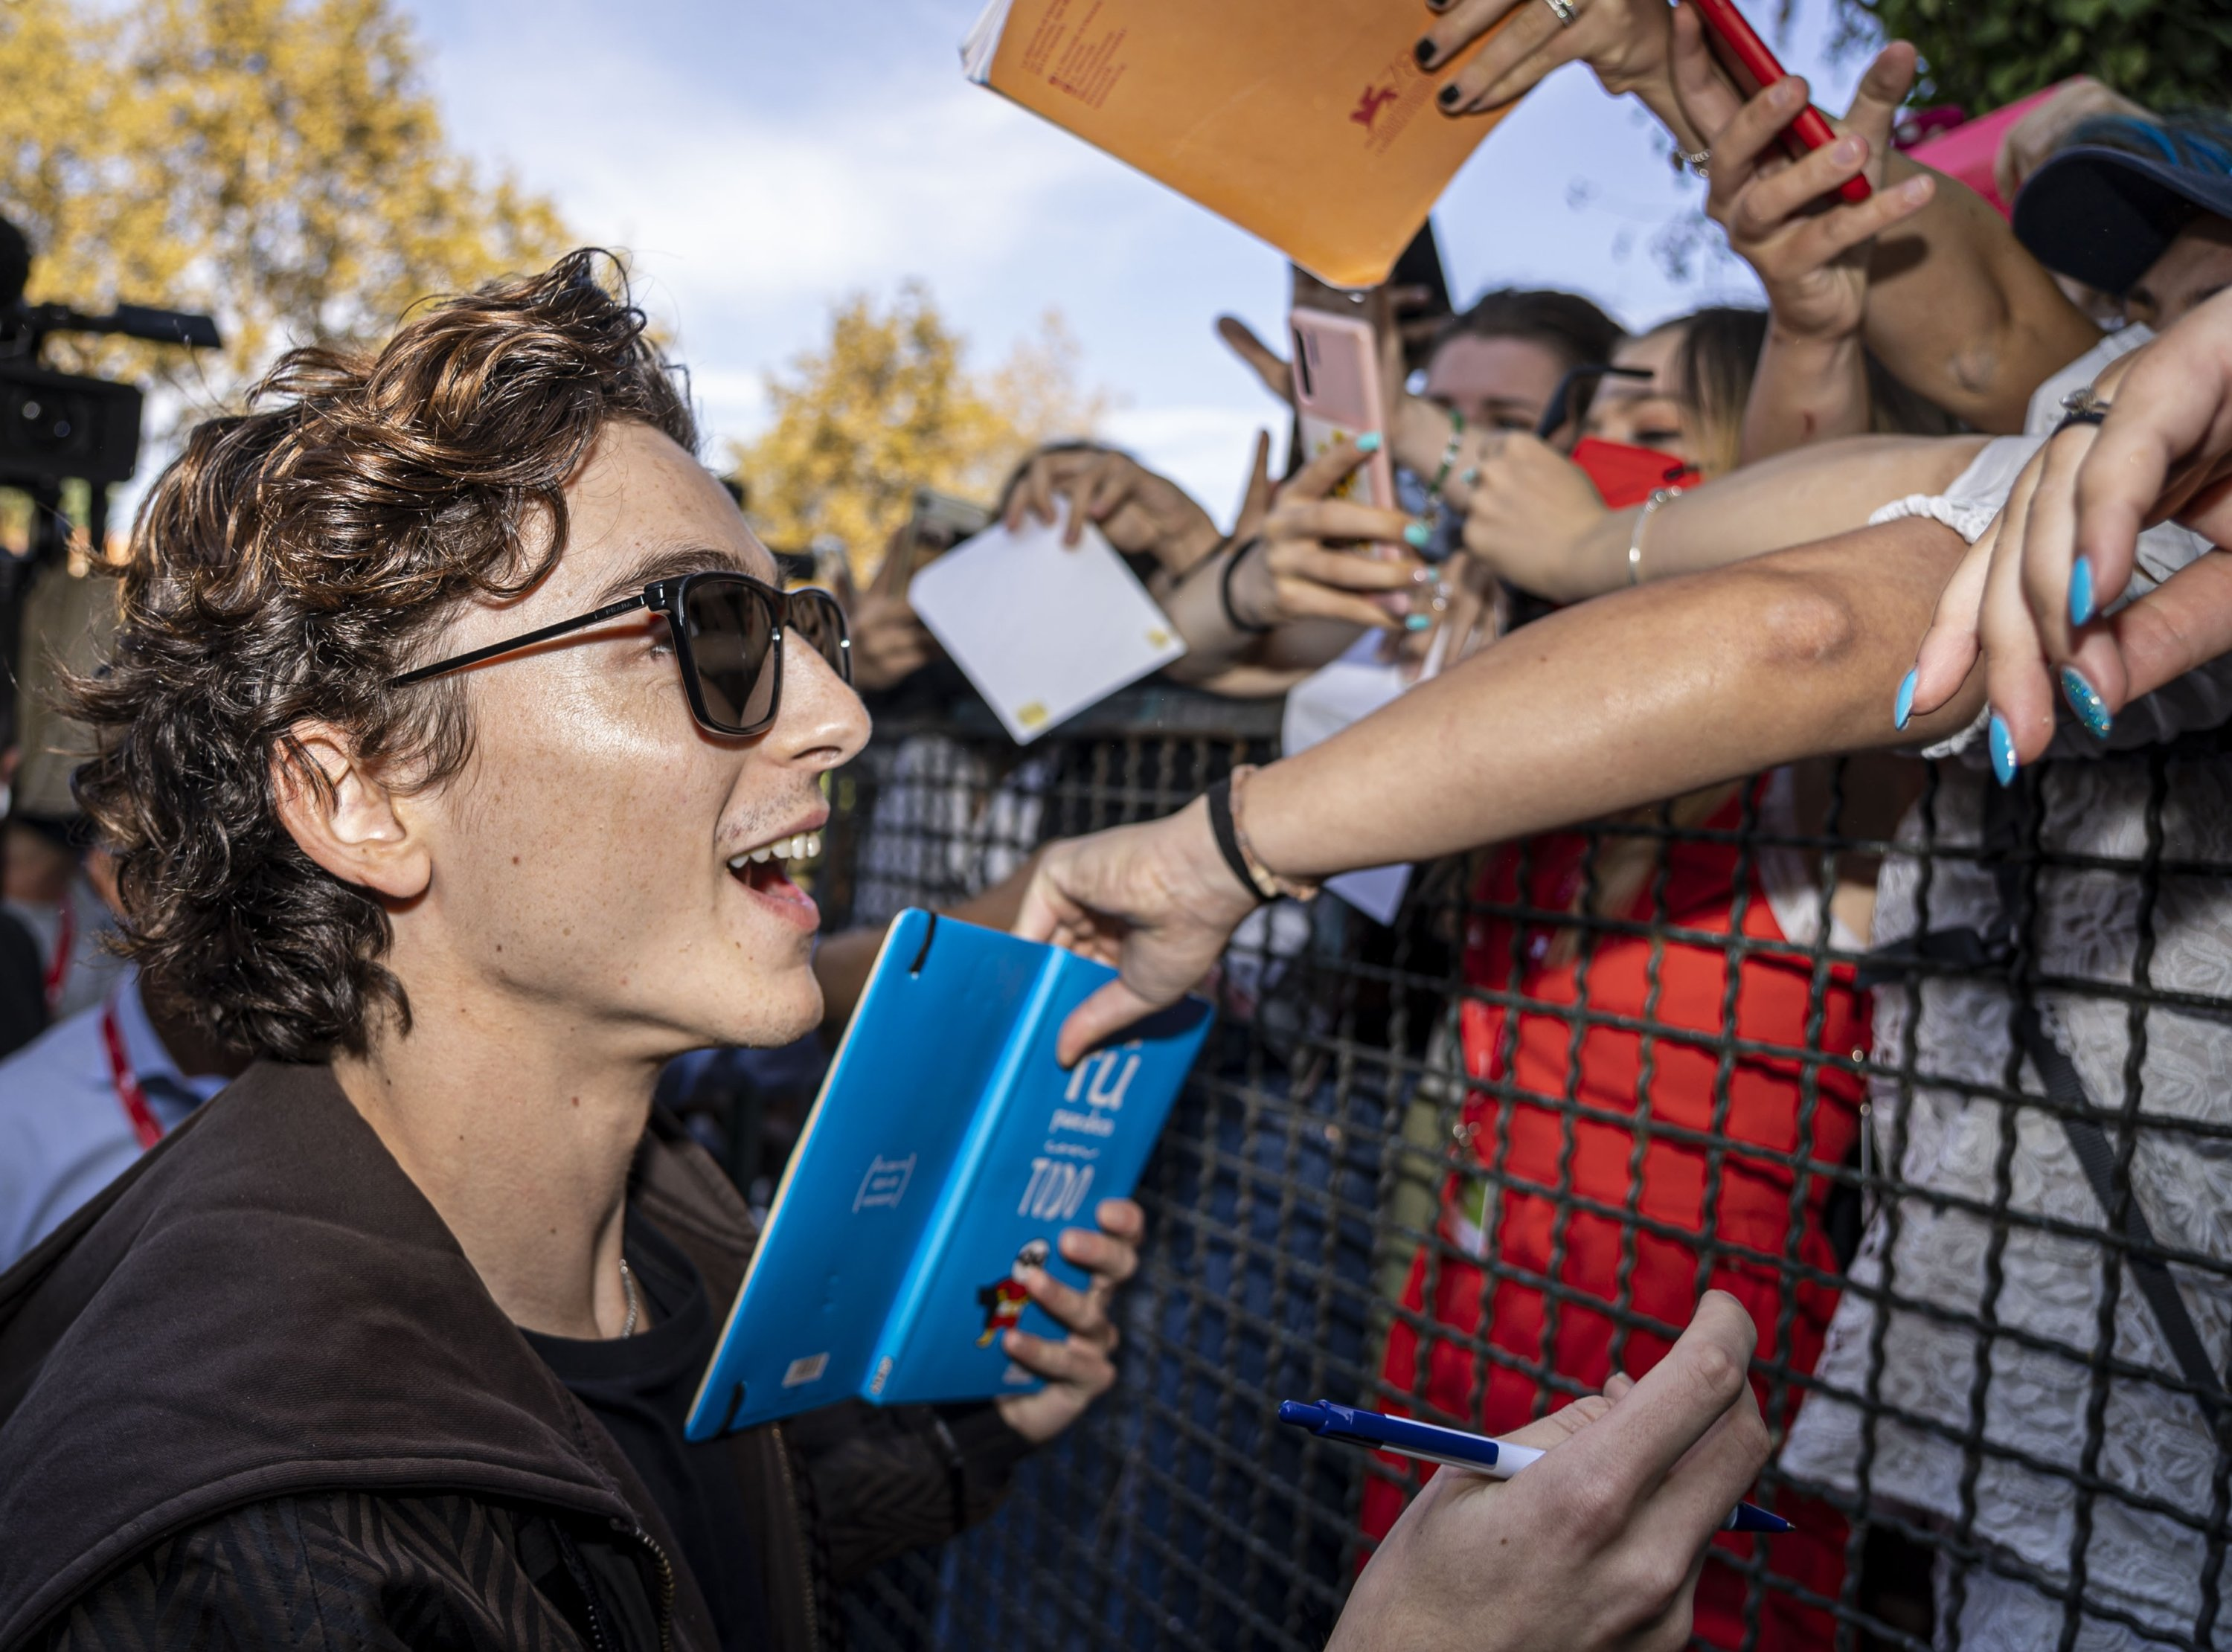 """Actor Timothee Chalamet signs autographs upon arrival for the photocall of the film """"Dune"""" at the 78th Venice Film Festival, in Venice, Italy, Sept. 3, 2021. (AP Photo)"""